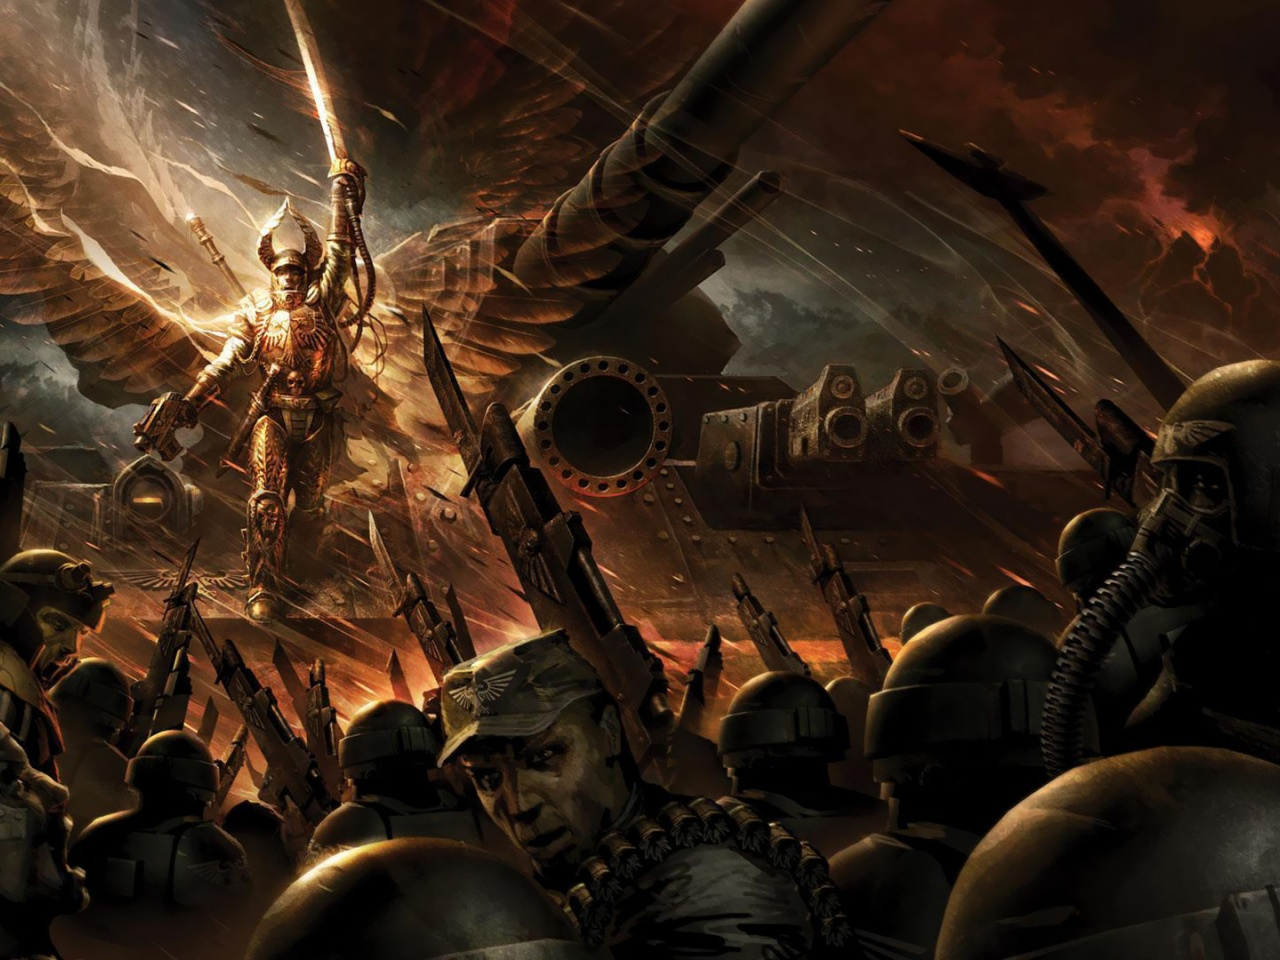 1280x960 Warhammer, game, games